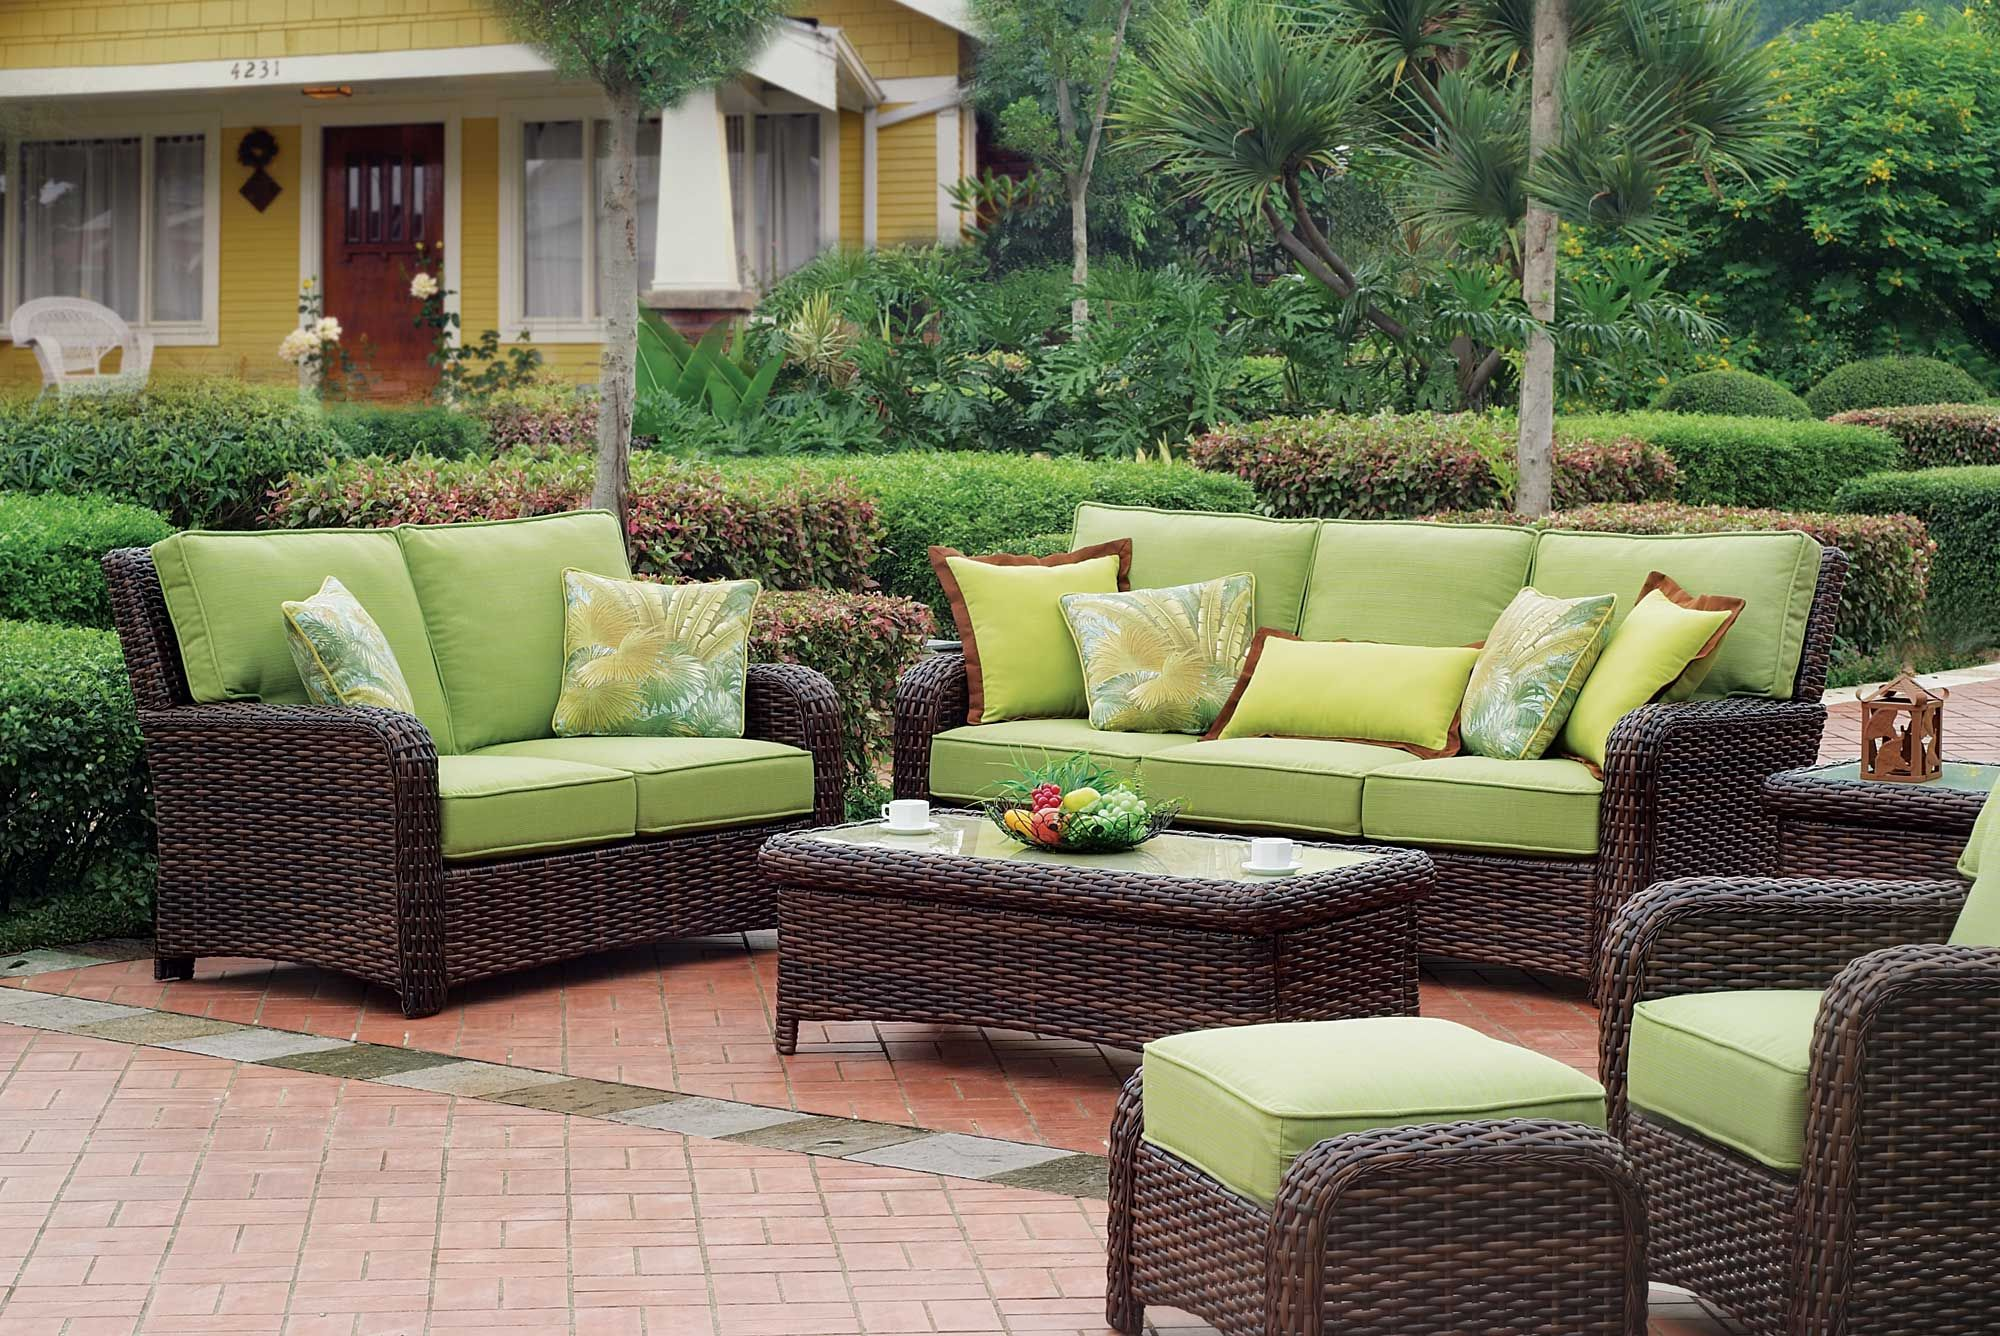 Wicker furniture with green lowes patio cushions plus pavers floor and  table for patio decoration ideaswicker furniture with green lowes patio cushions plus pavers floor  . Porch Furniture Cushions. Home Design Ideas